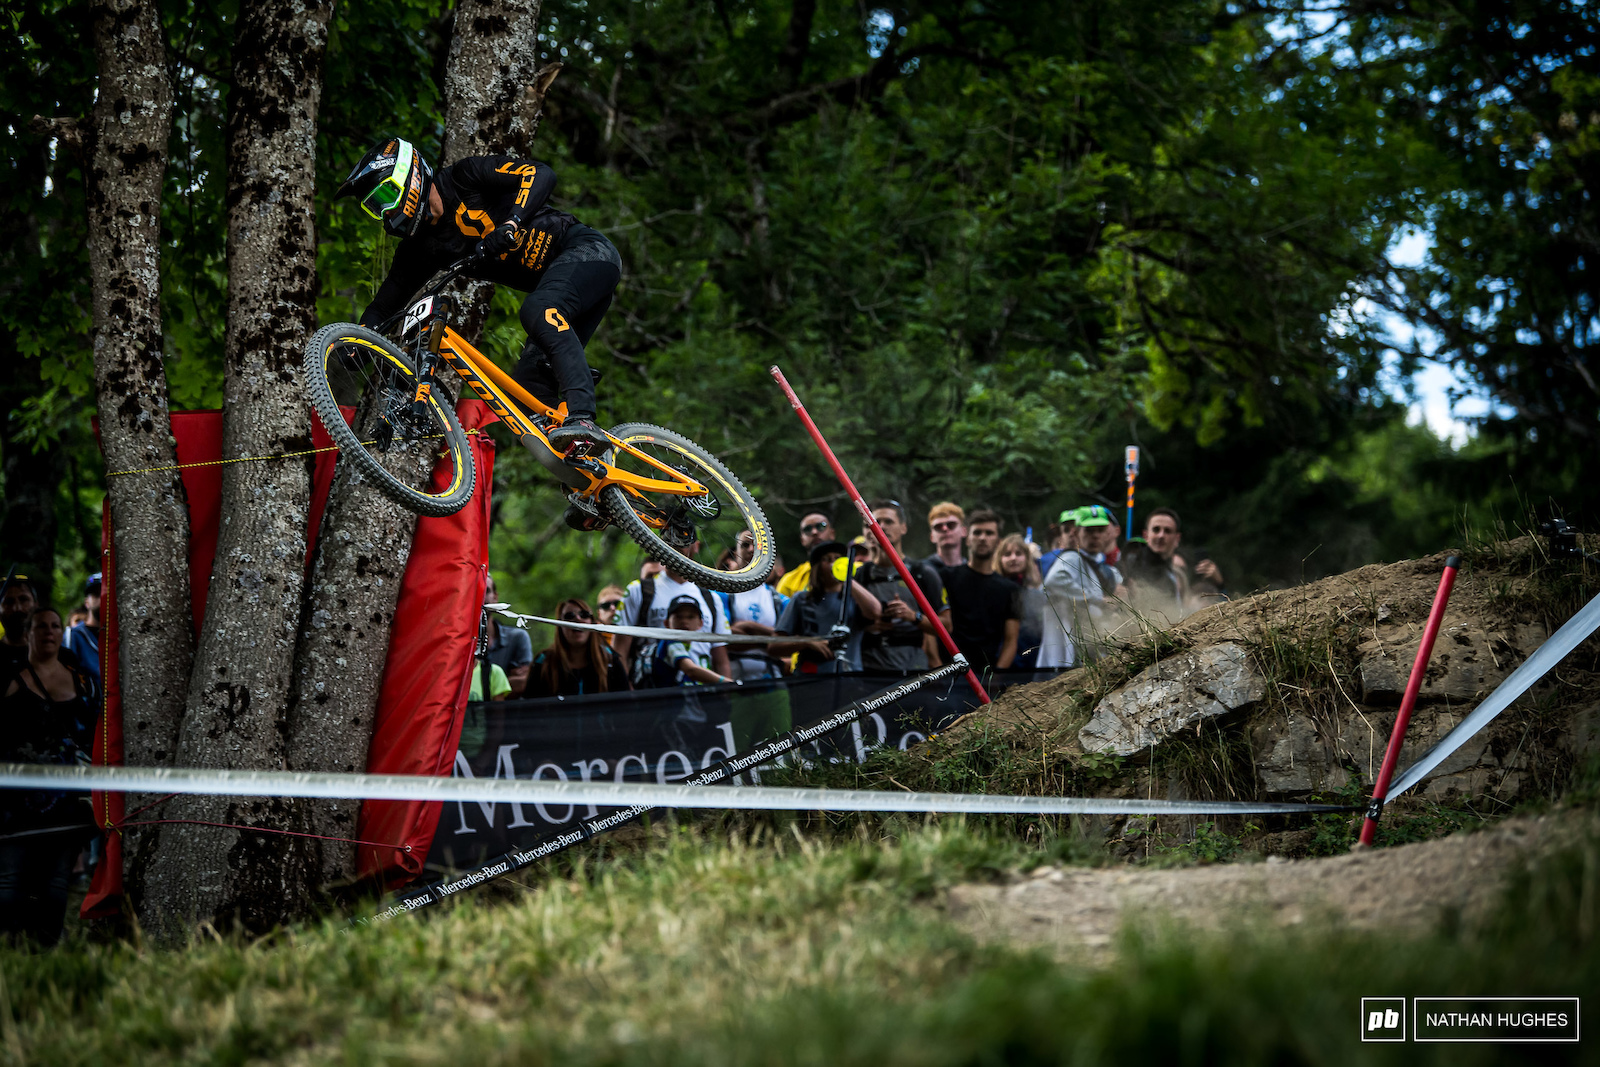 Dean Lucas turned it up a notch here in the Alps and sent it to a convincing 10th.